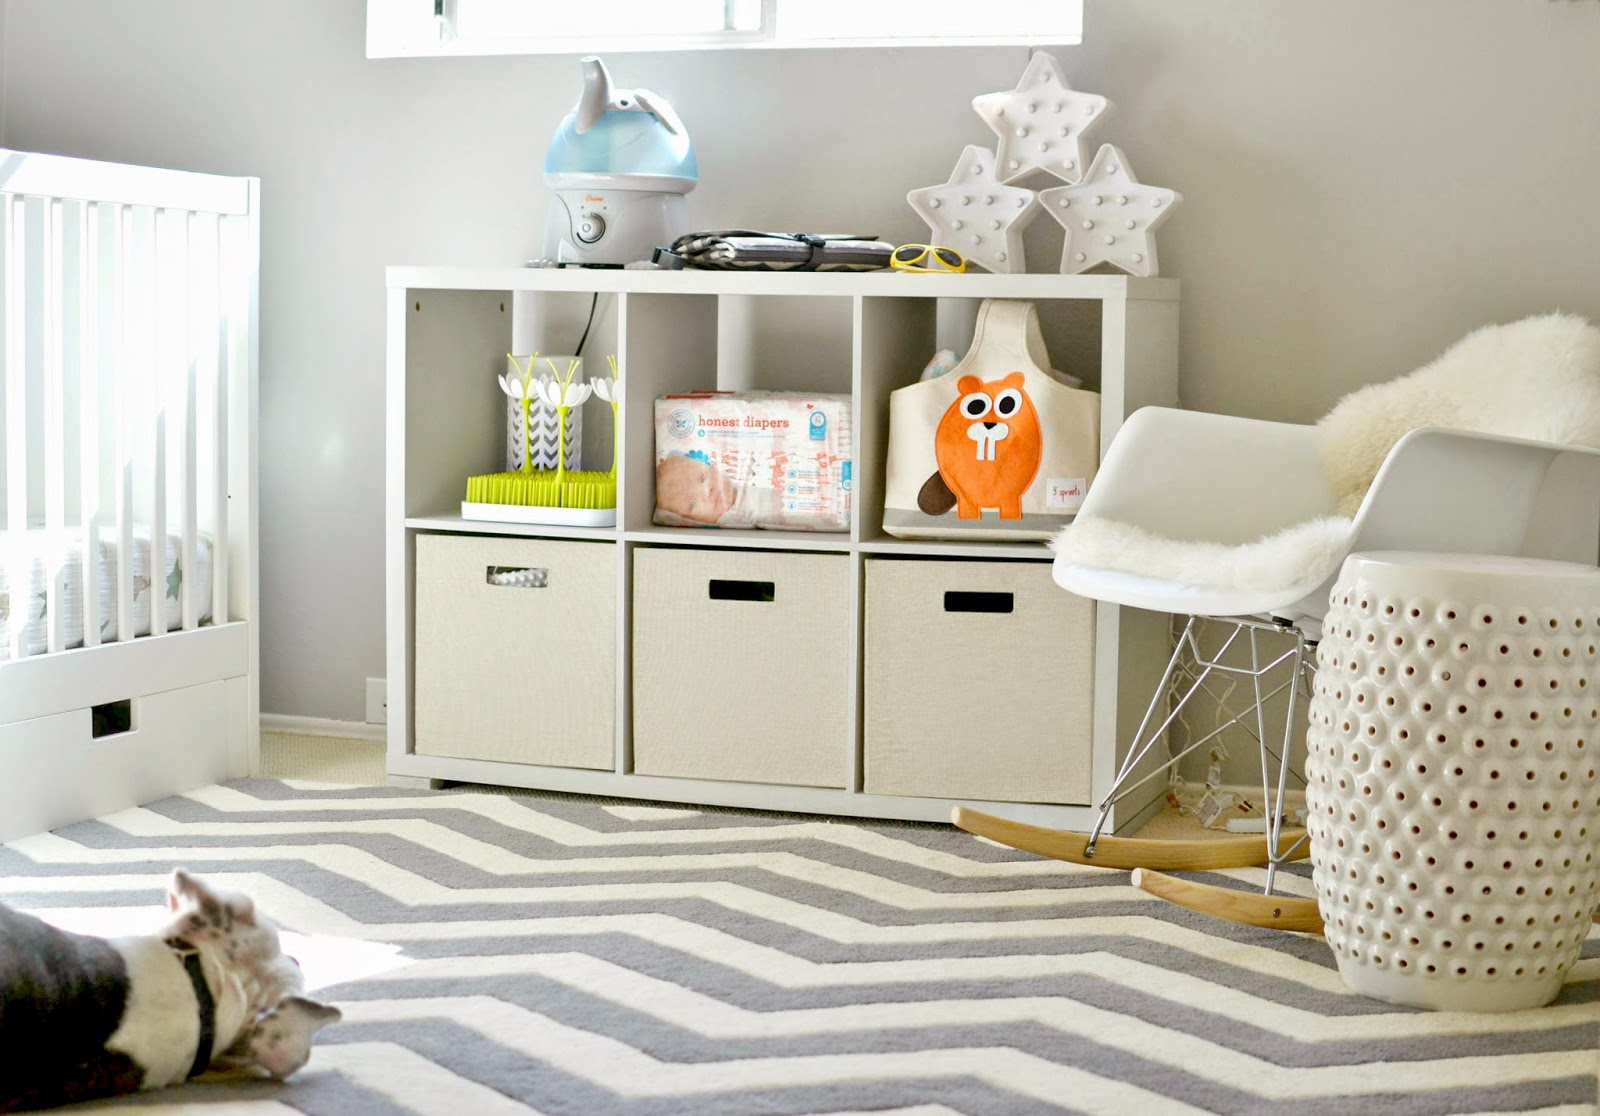 Nursery tour, nursery on a budget, Aden and Anais, IKEA crib, rock n play sleeper